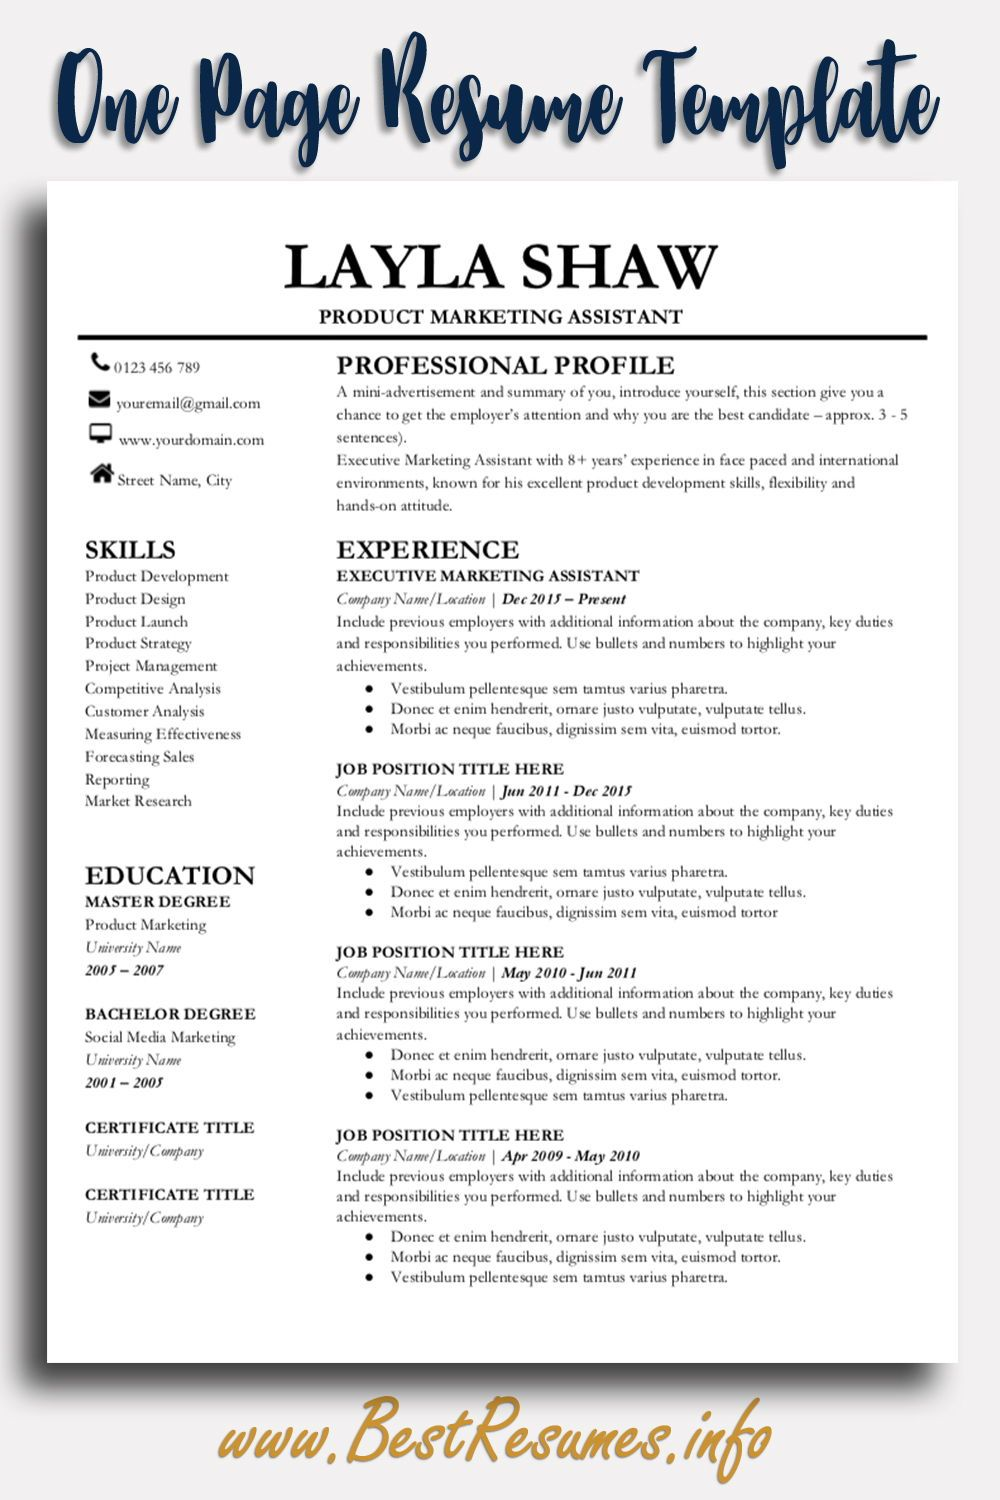 Professional Resume Template Layla Shaw - Resume template professional, First job resume, Resume template, One page resume template, Teacher resume template, Business resume - Resume Template Layla Shaw  A modern professional resume template for Google Docs, very easy to edit resume template! Land the job today!